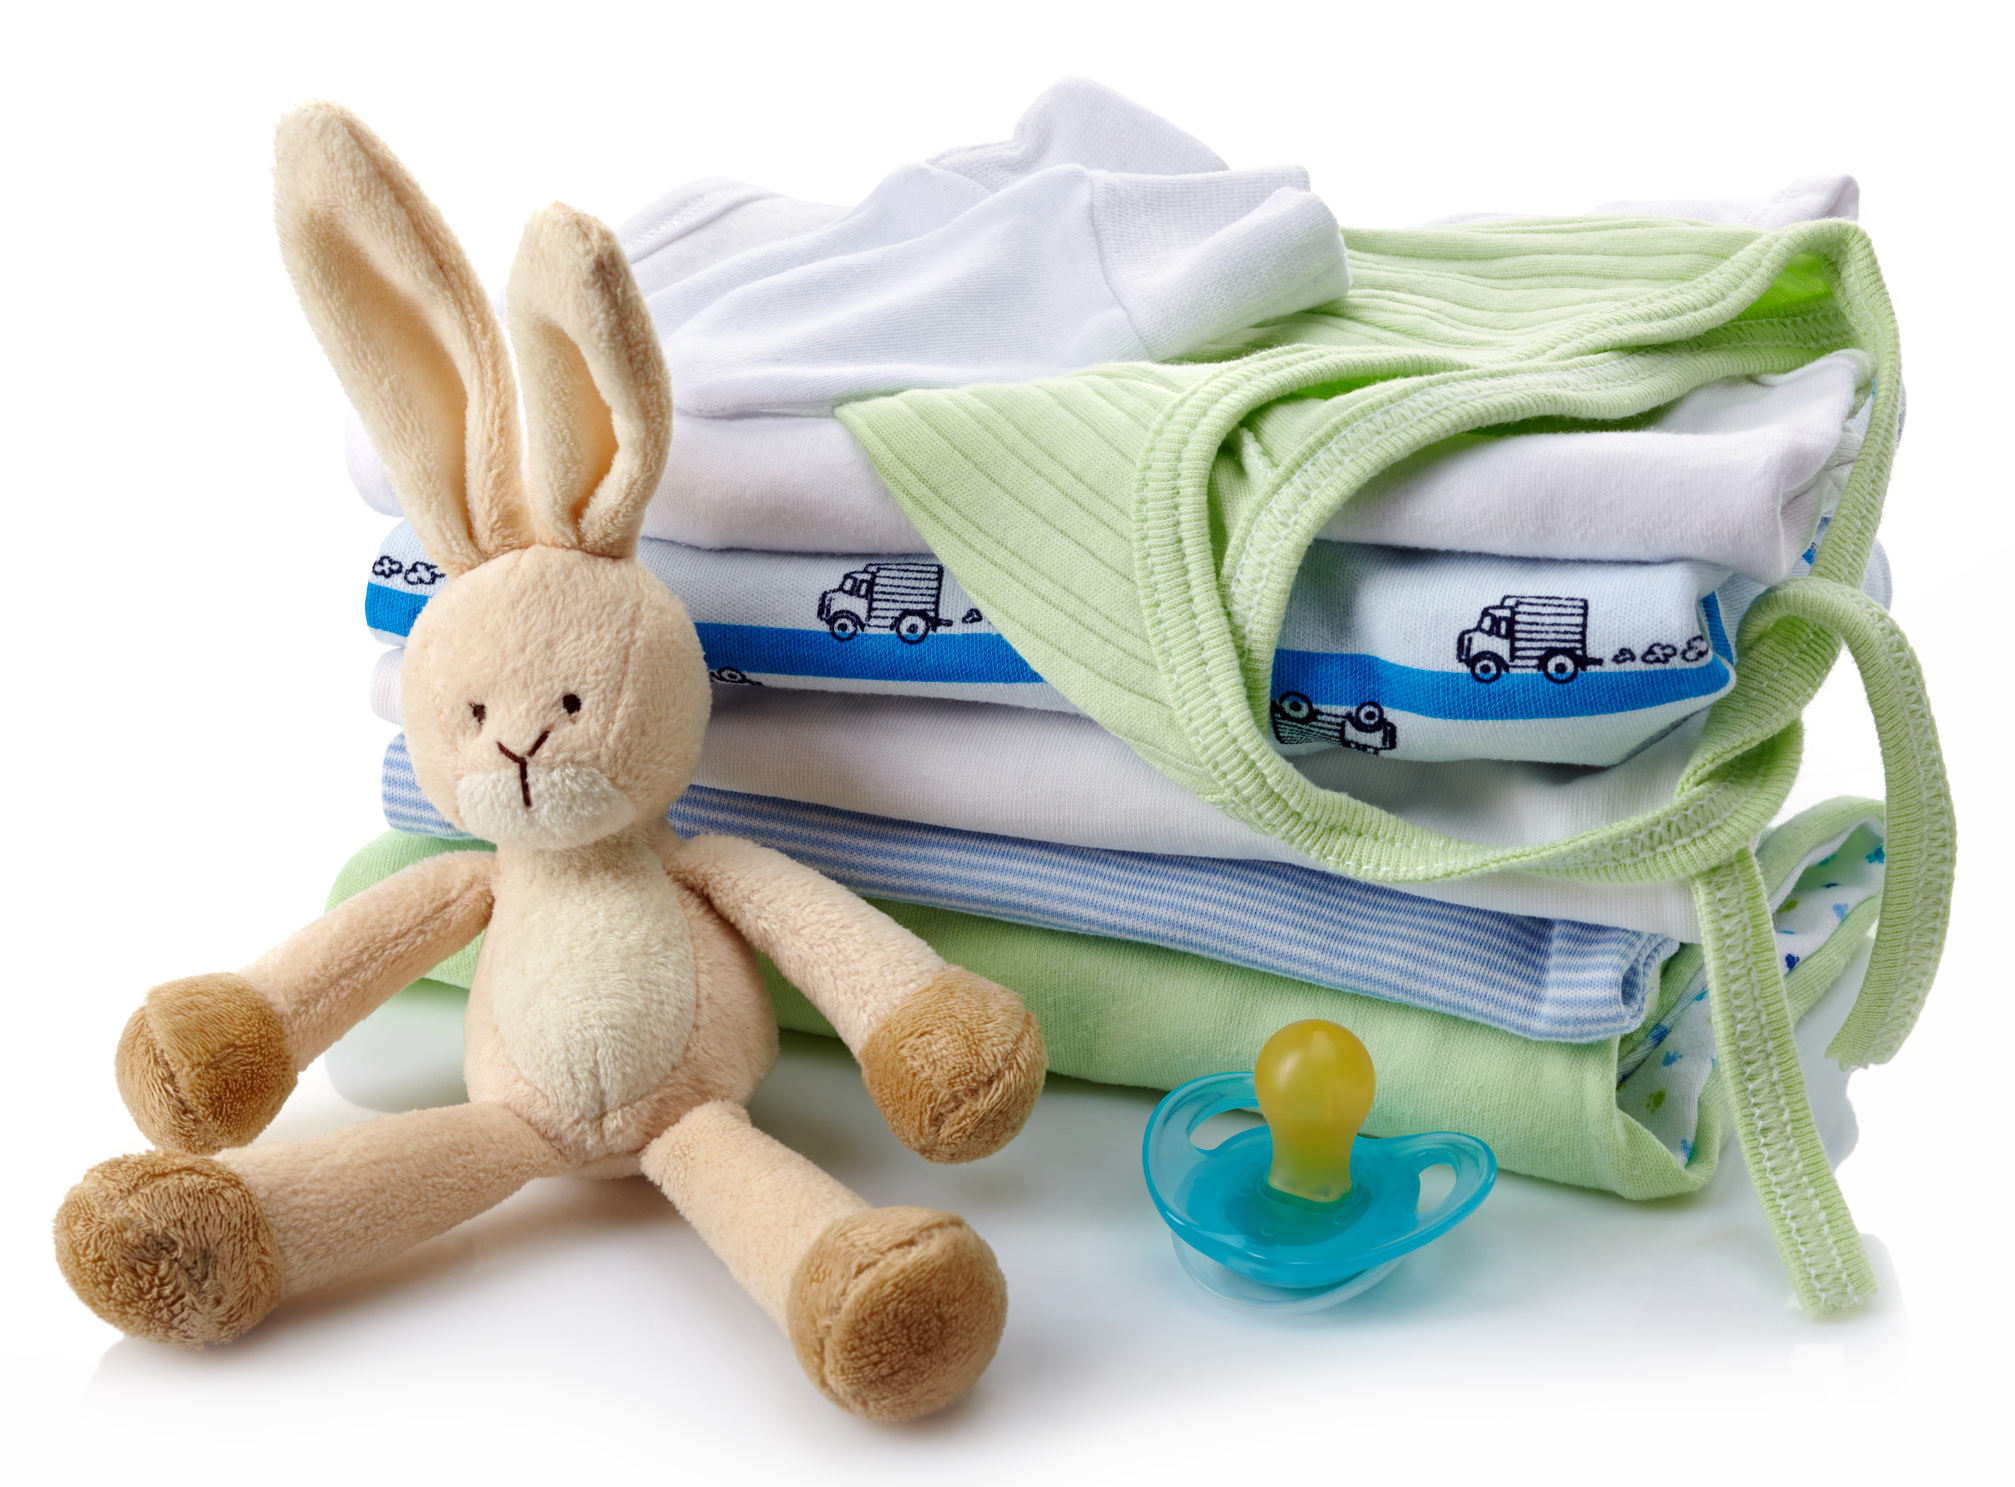 Newborn baby gifts - baby clothes